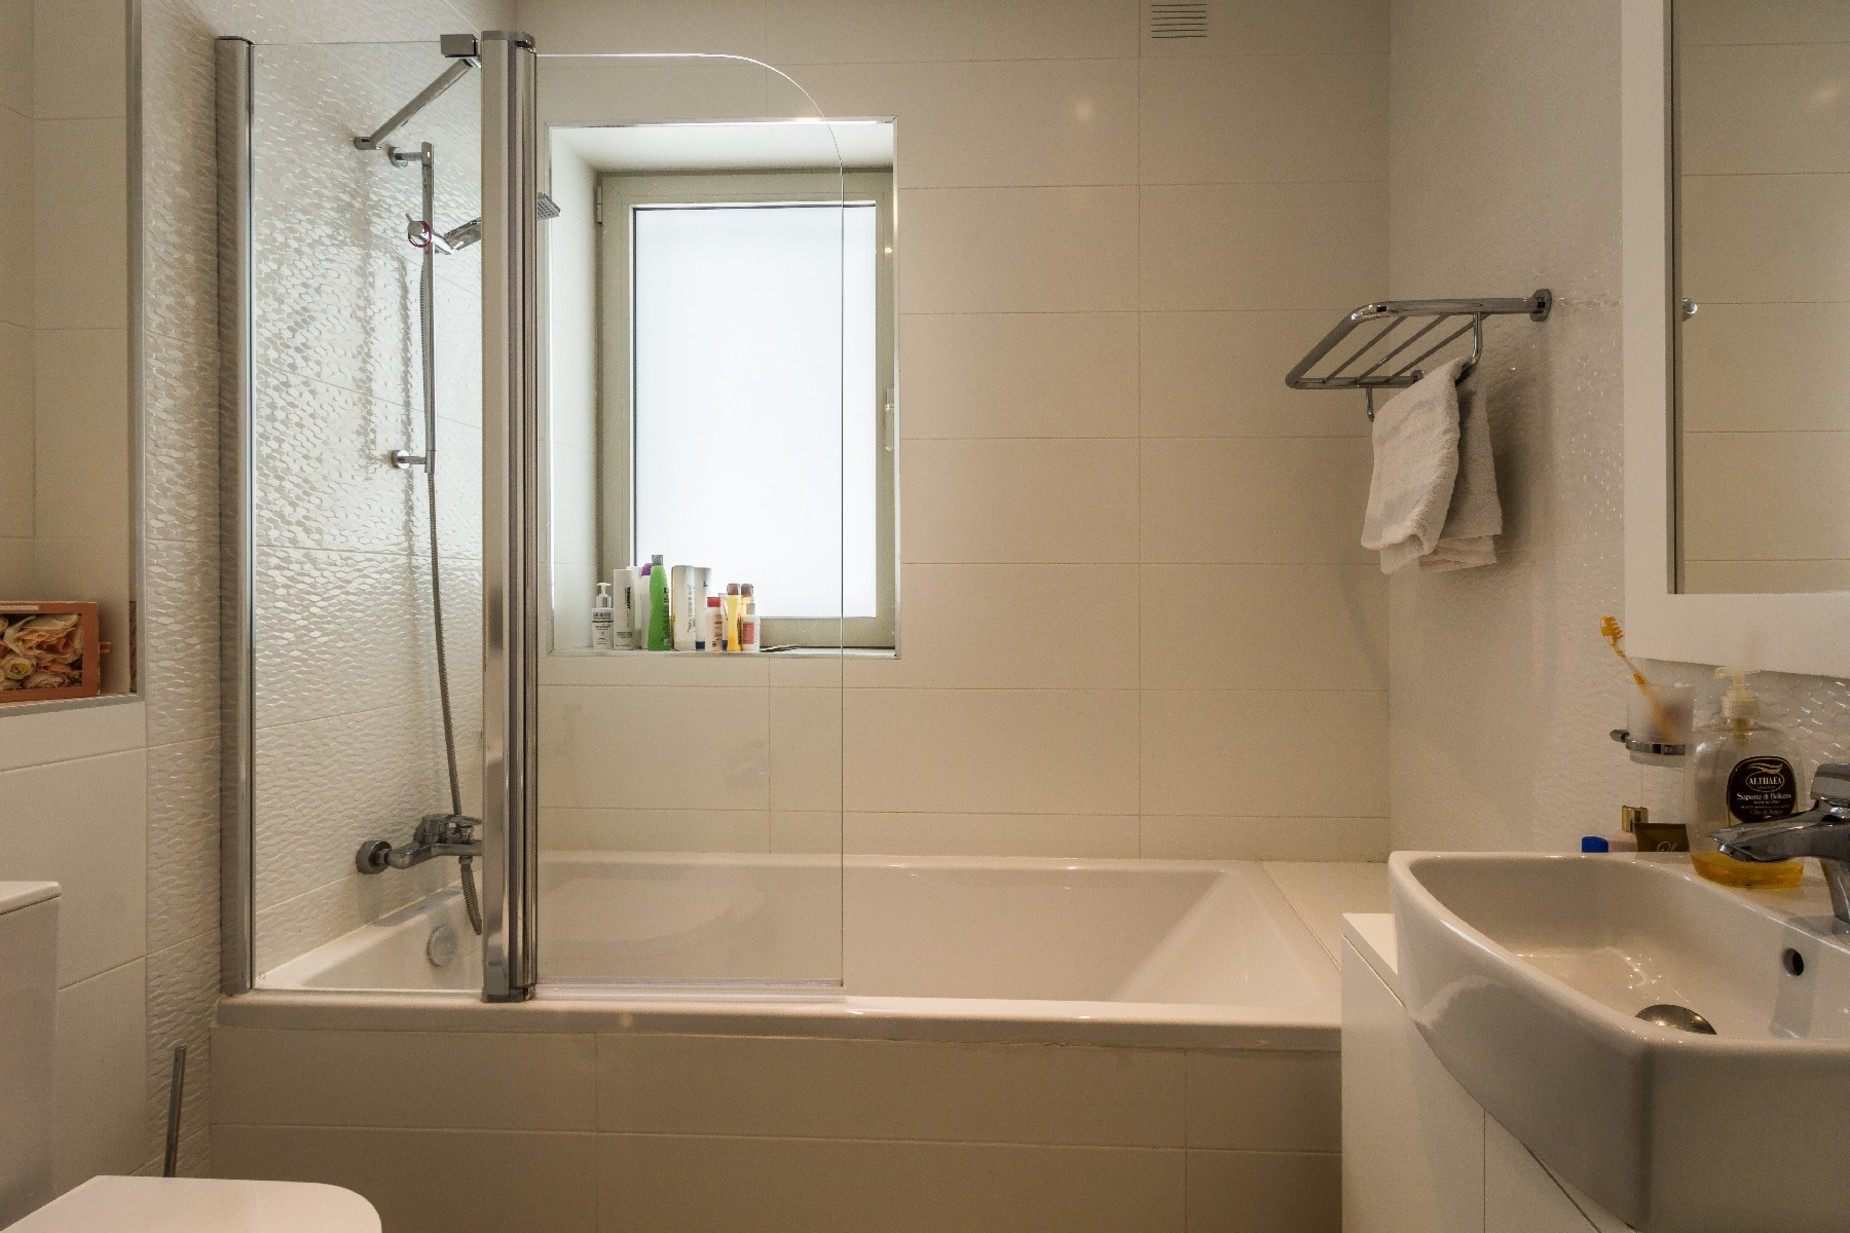 4 bed Apartment For Sale in Sliema, Sliema - thumb 13